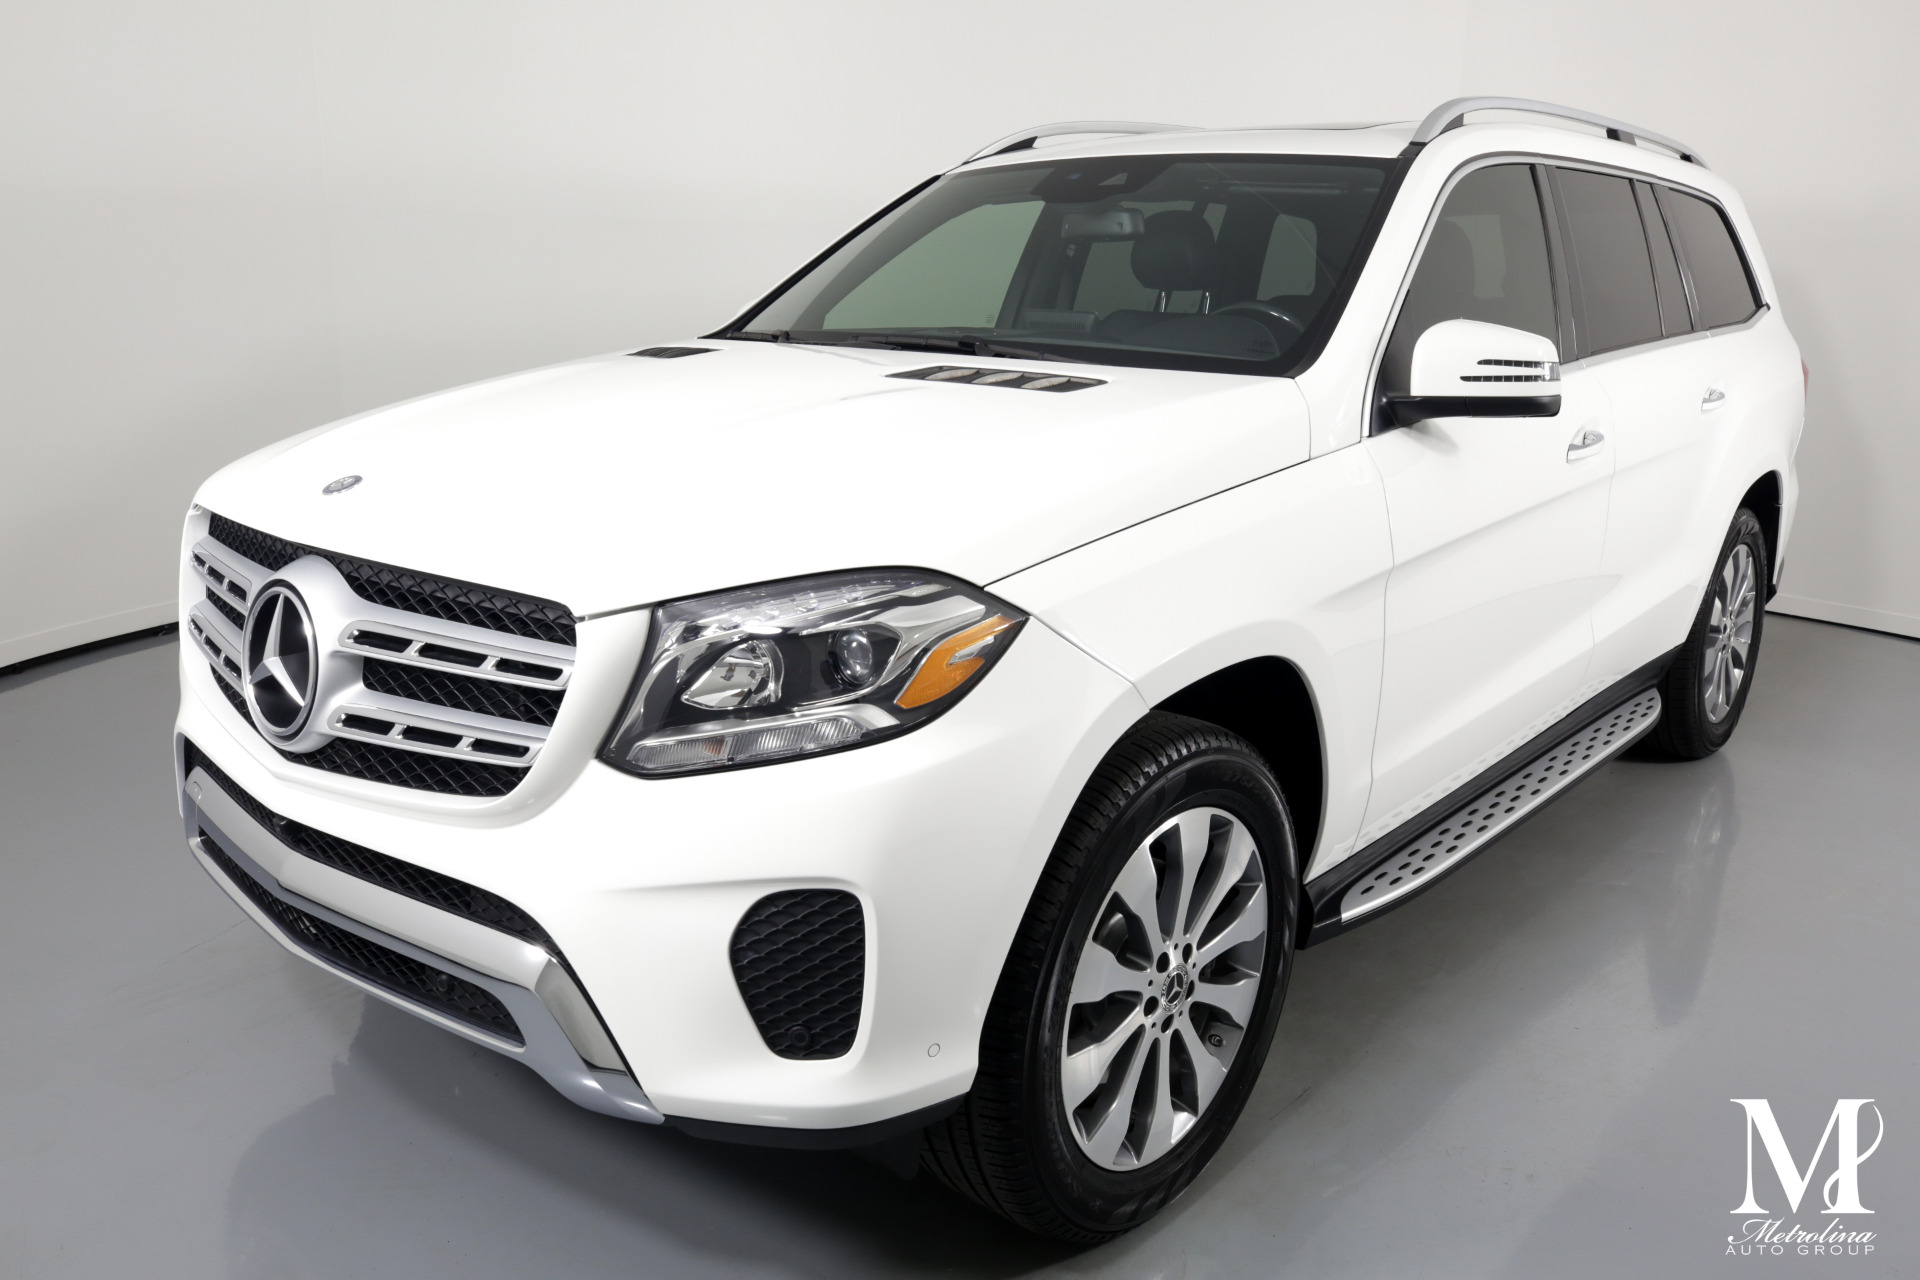 Used 2017 Mercedes-Benz GLS GLS 450 for sale Sold at Metrolina Auto Group in Charlotte NC 28217 - 4